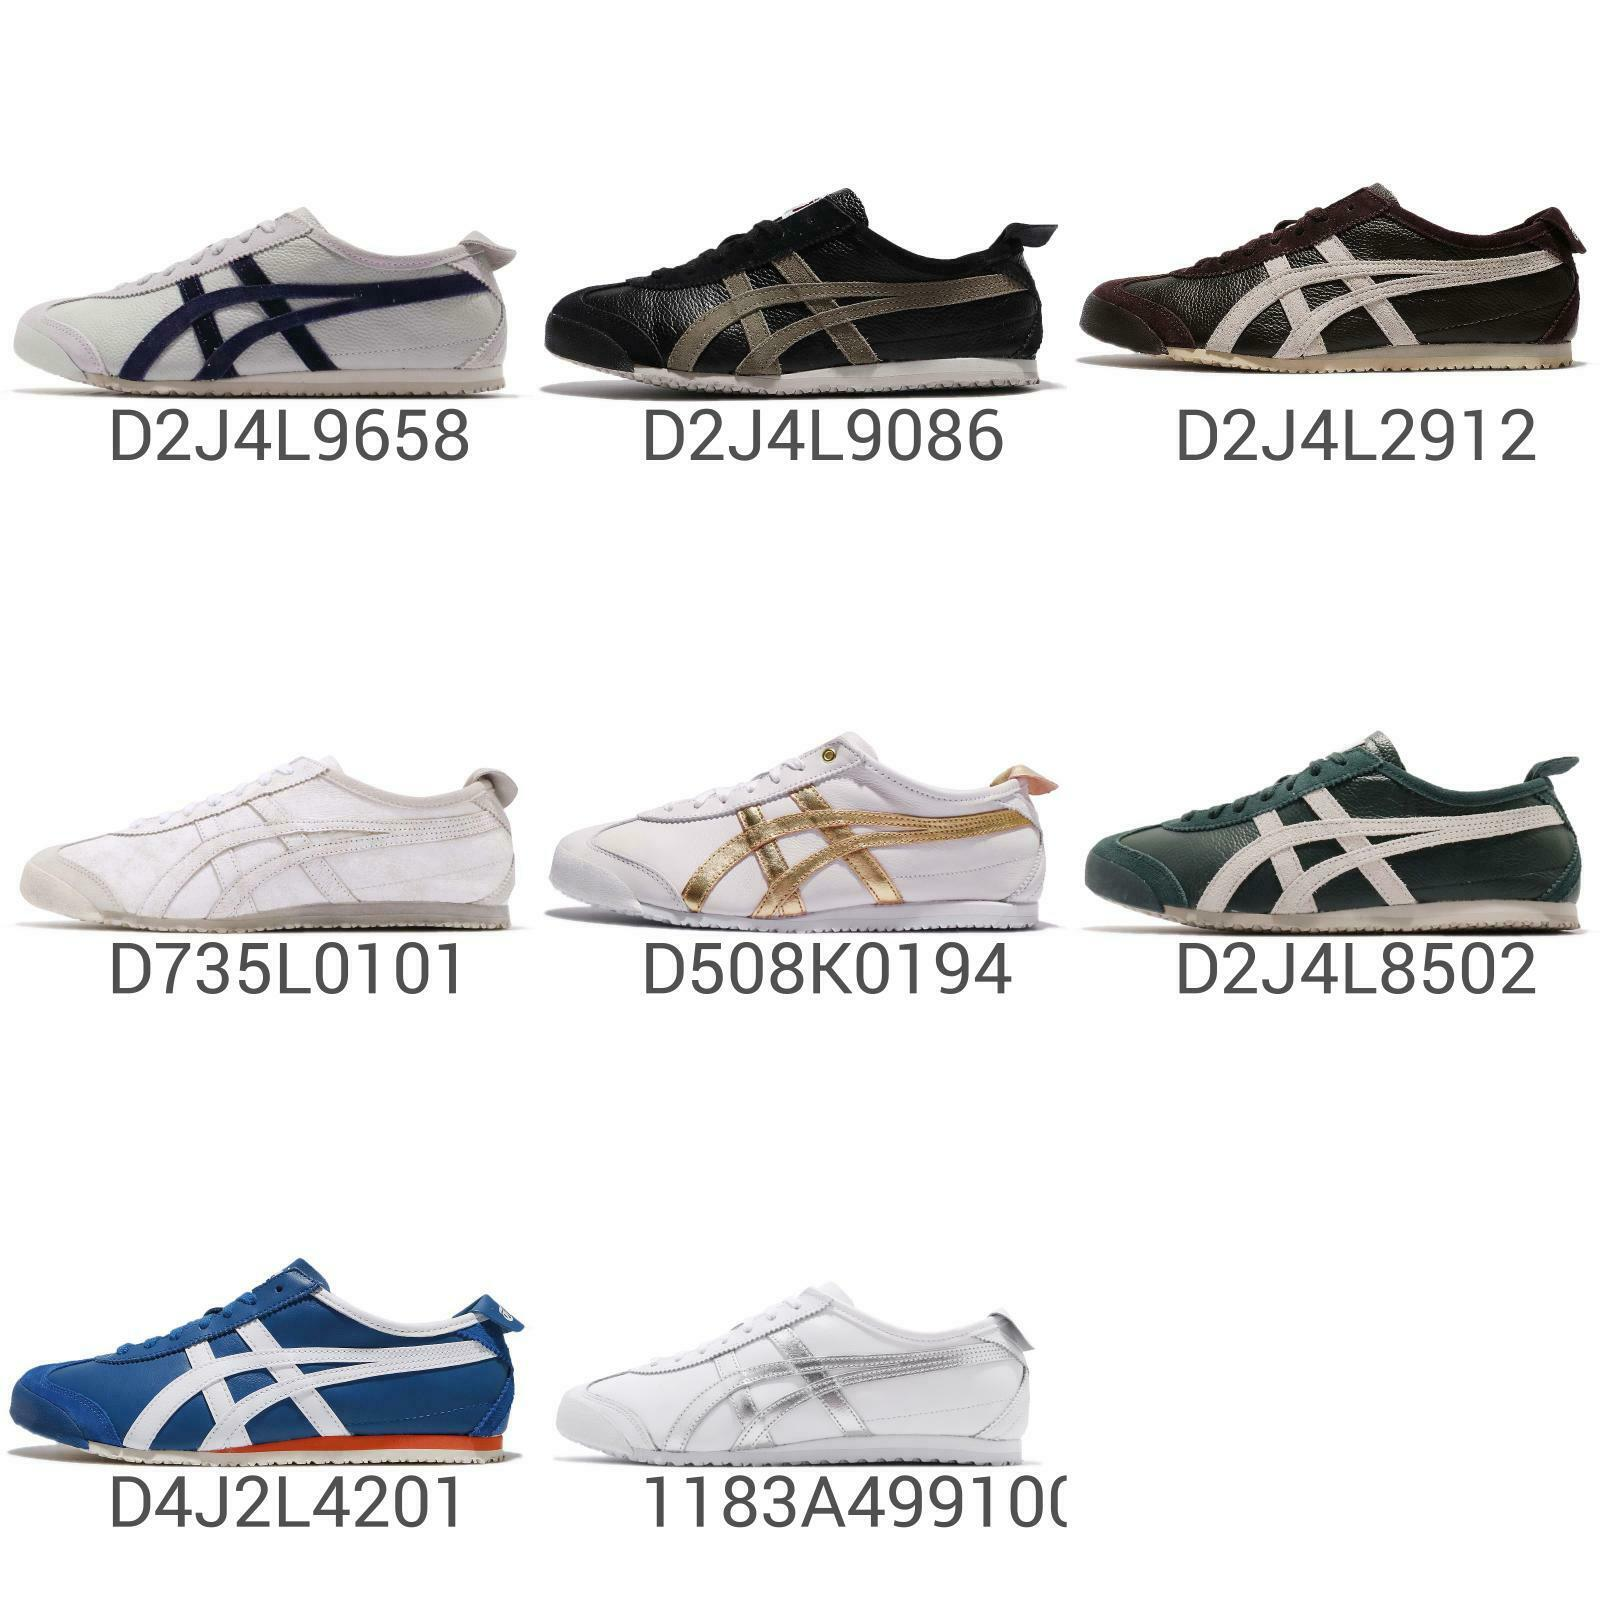 Asics Onitsuka Tiger Mexico 66 Vin Classic Vintage Mens Shoes Sneakers Pick 1